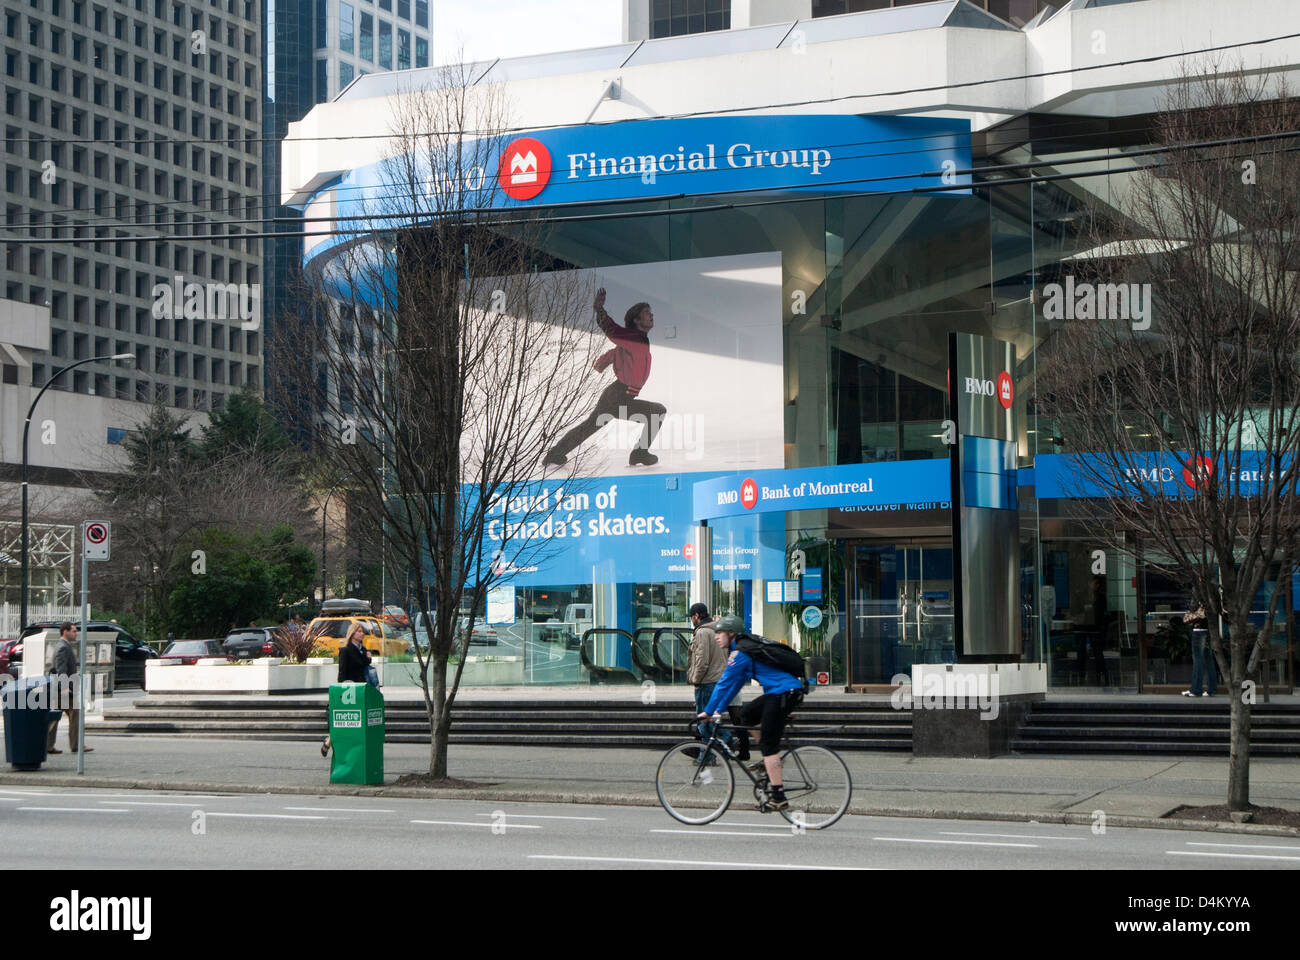 Bank of Montreal or BMO bank in Vancouver, British Columbia, Canada - Stock Image